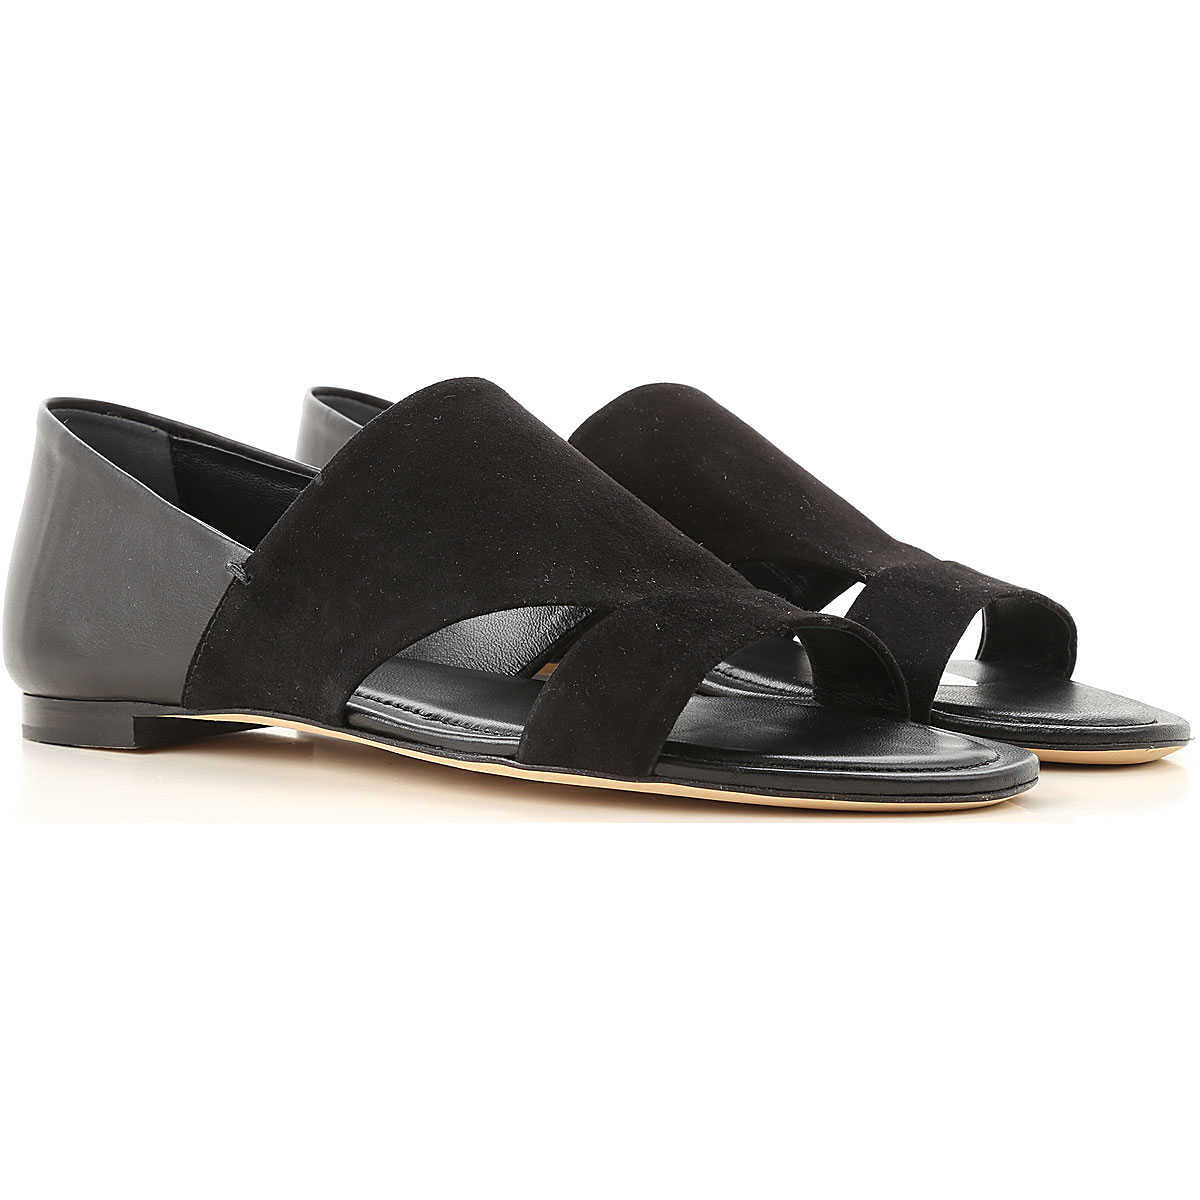 Tods Sandals for Women On Sale Black - GOOFASH